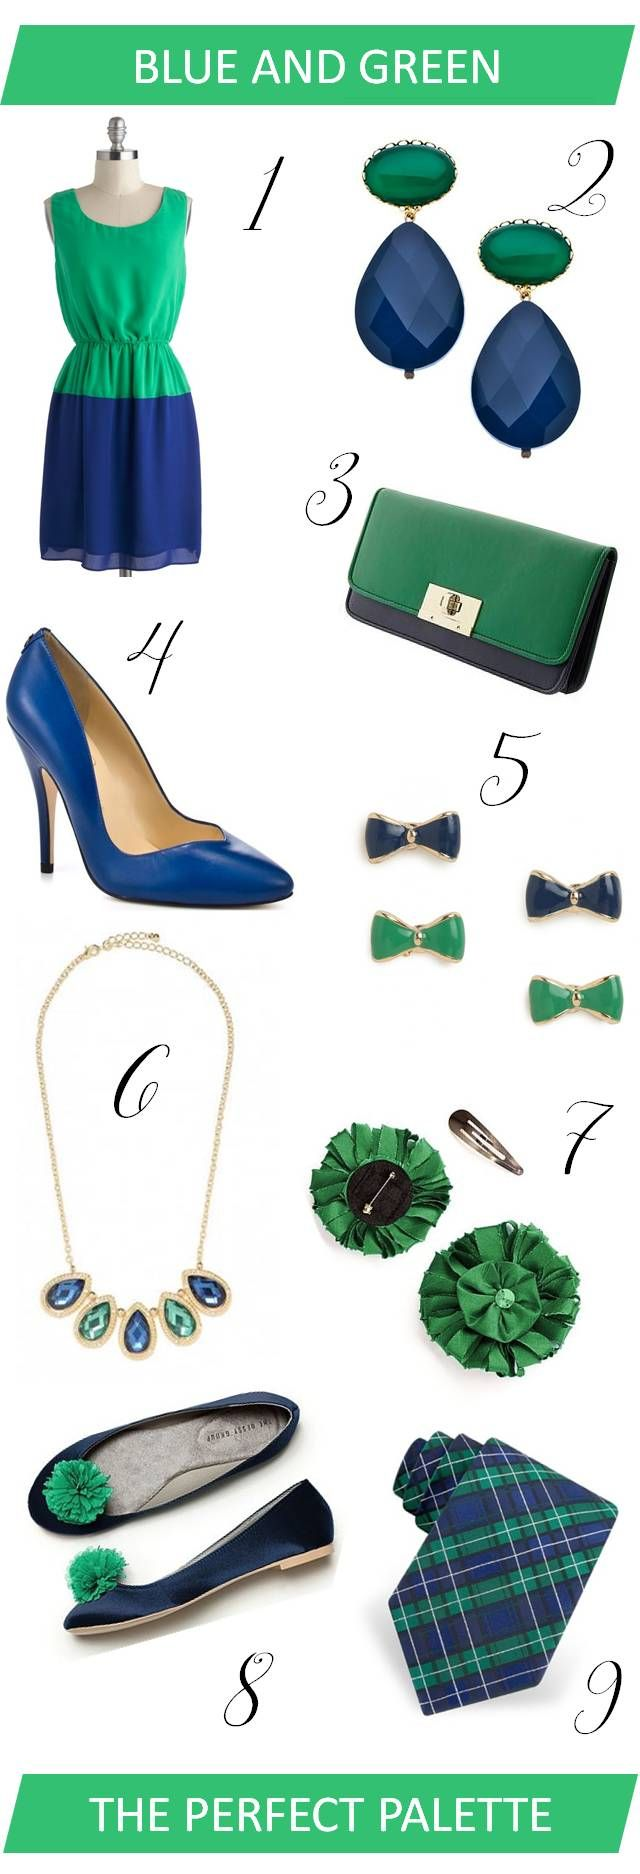 wedding wardrobe navy blue kelly green